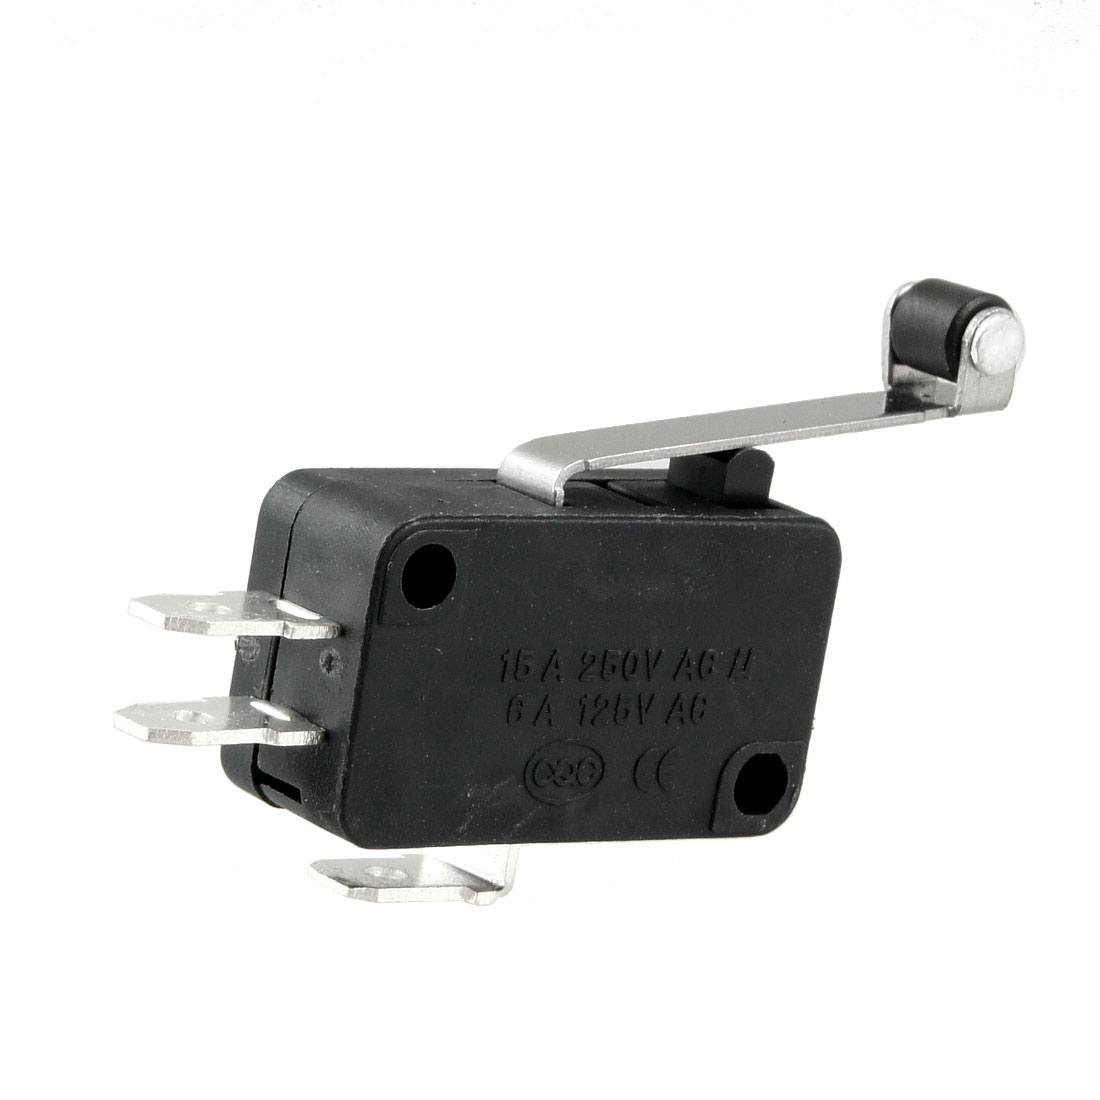 1NO+1NC Momentary AC250V/15A AC125V/6A Roller Lever Miniature Micro Switch